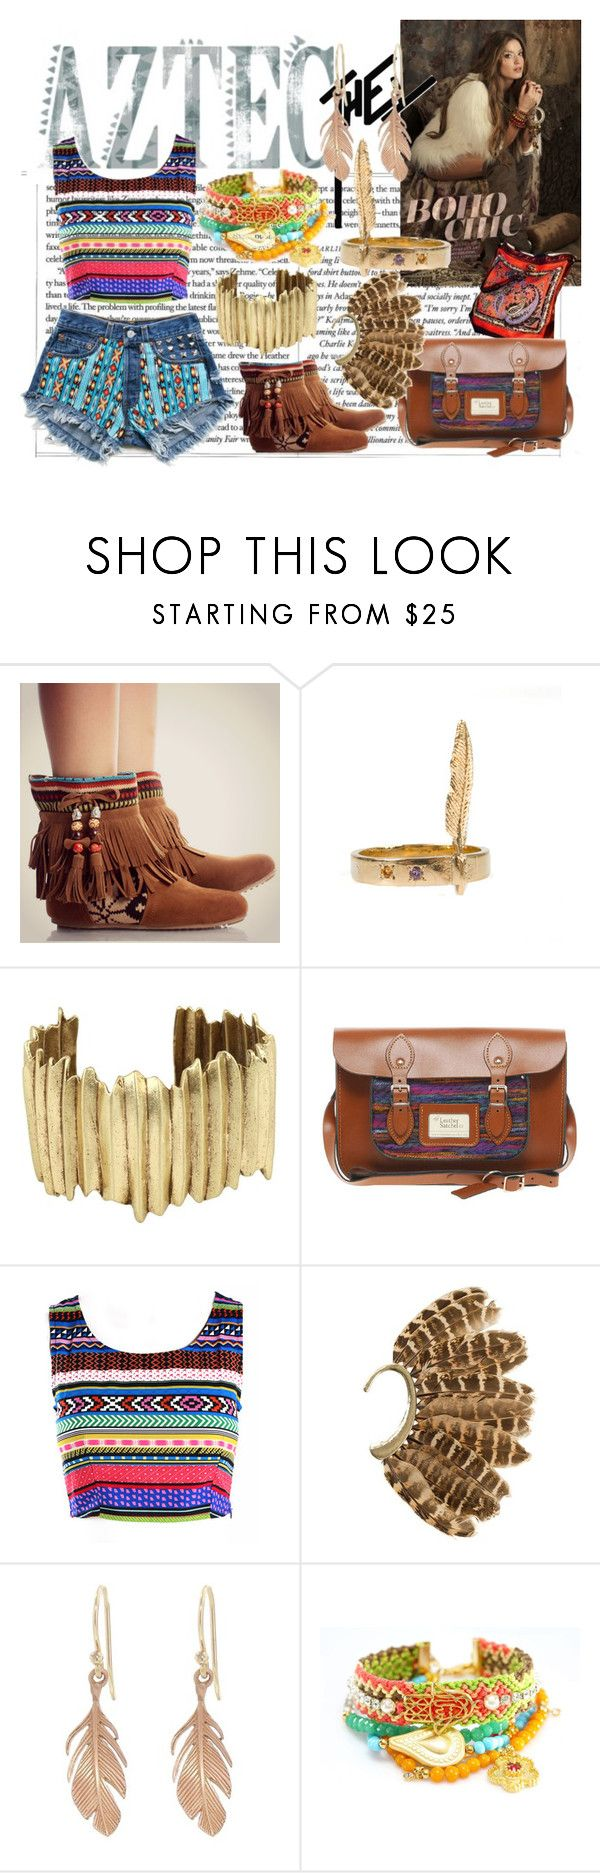 """""""Boho - Aztec"""" by ruby-lord ❤ liked on Polyvore featuring Behance, D_Luxe, Lucky Brand, The Leather Satchel Co., Bohemian Society, Annette Ferdinandsen, feather earrings, aztec-inspired print, aztec shorts and leather bag"""